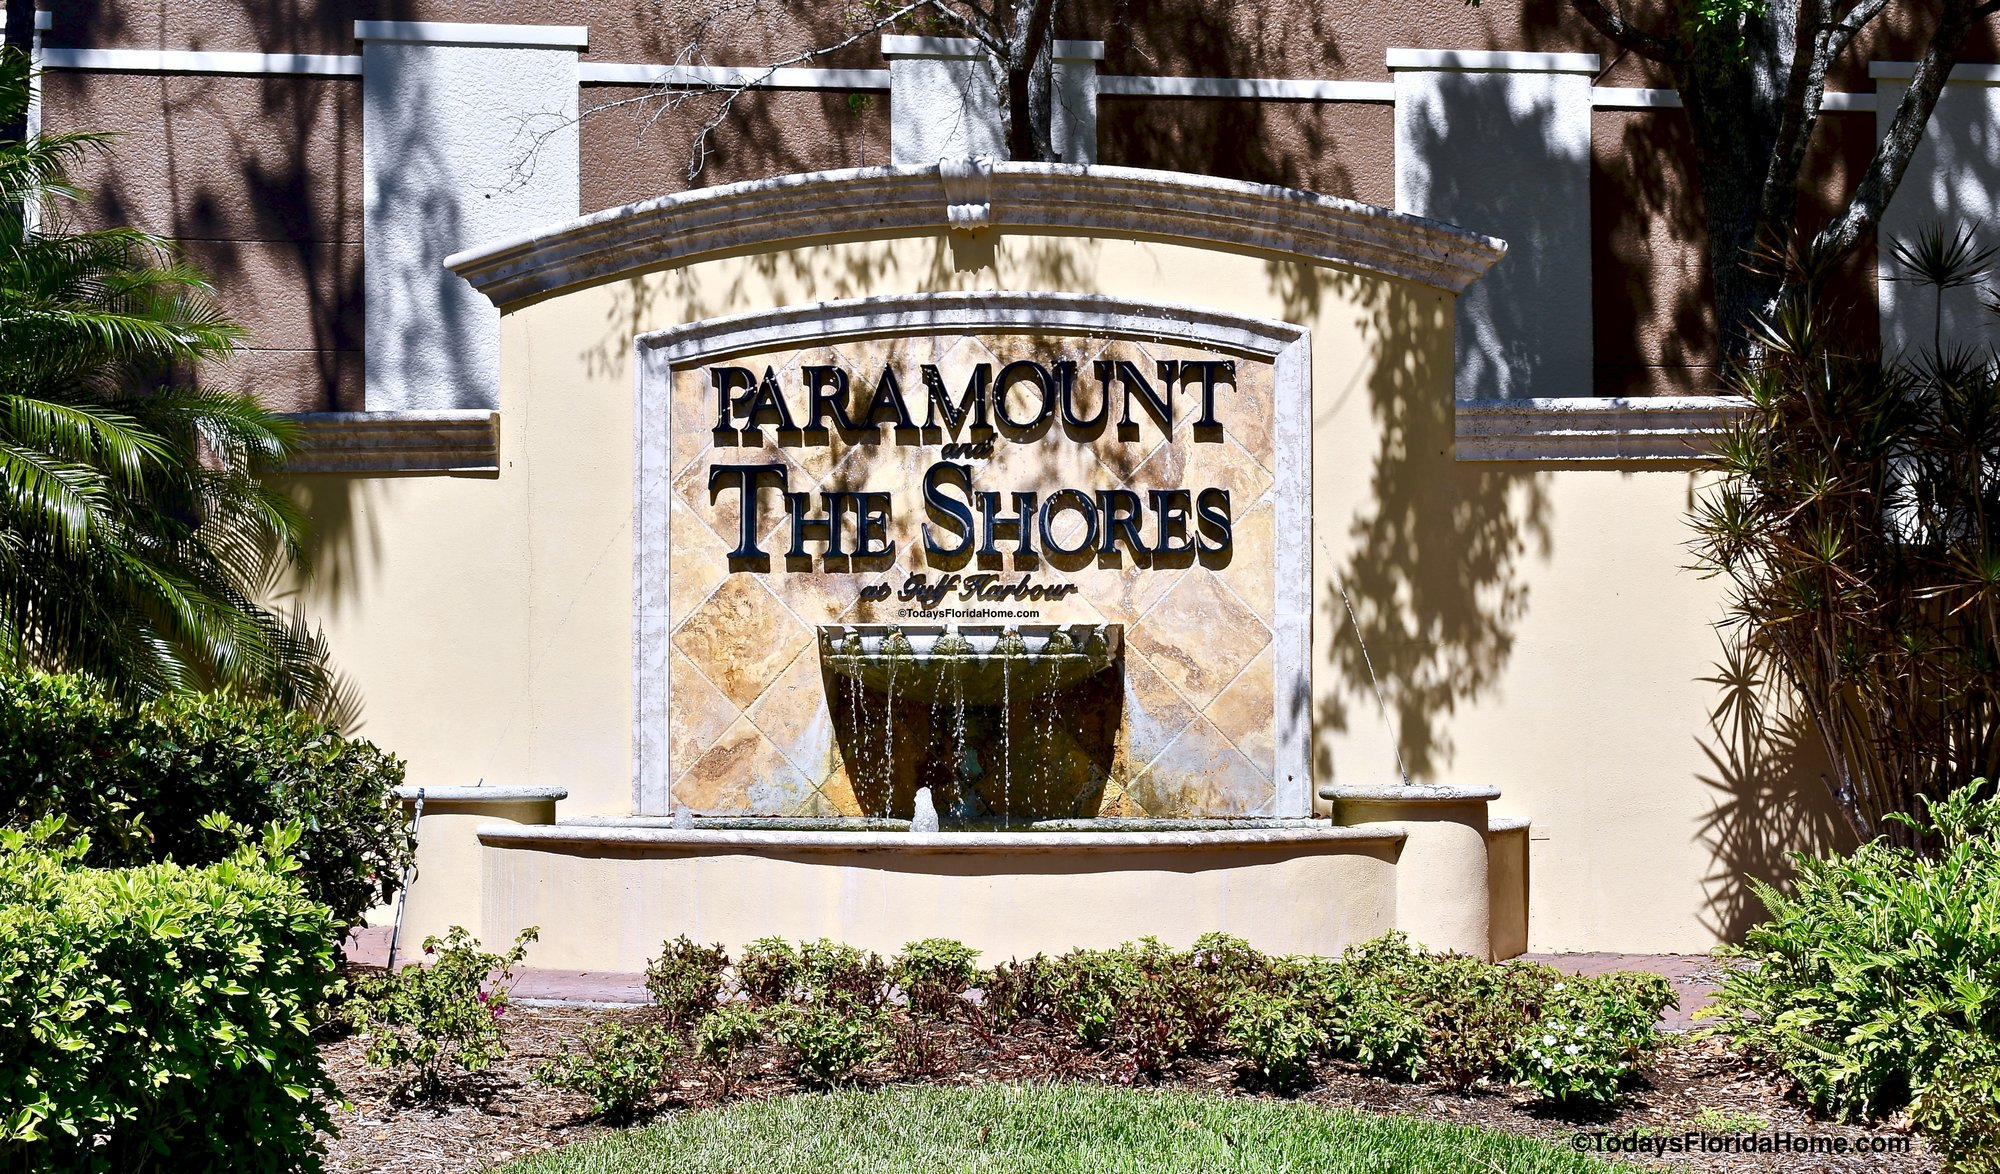 Paramount and The Shores, Paramount Fort Myers, Paramount, Paramount Condos, Paramount Waterfront Condos